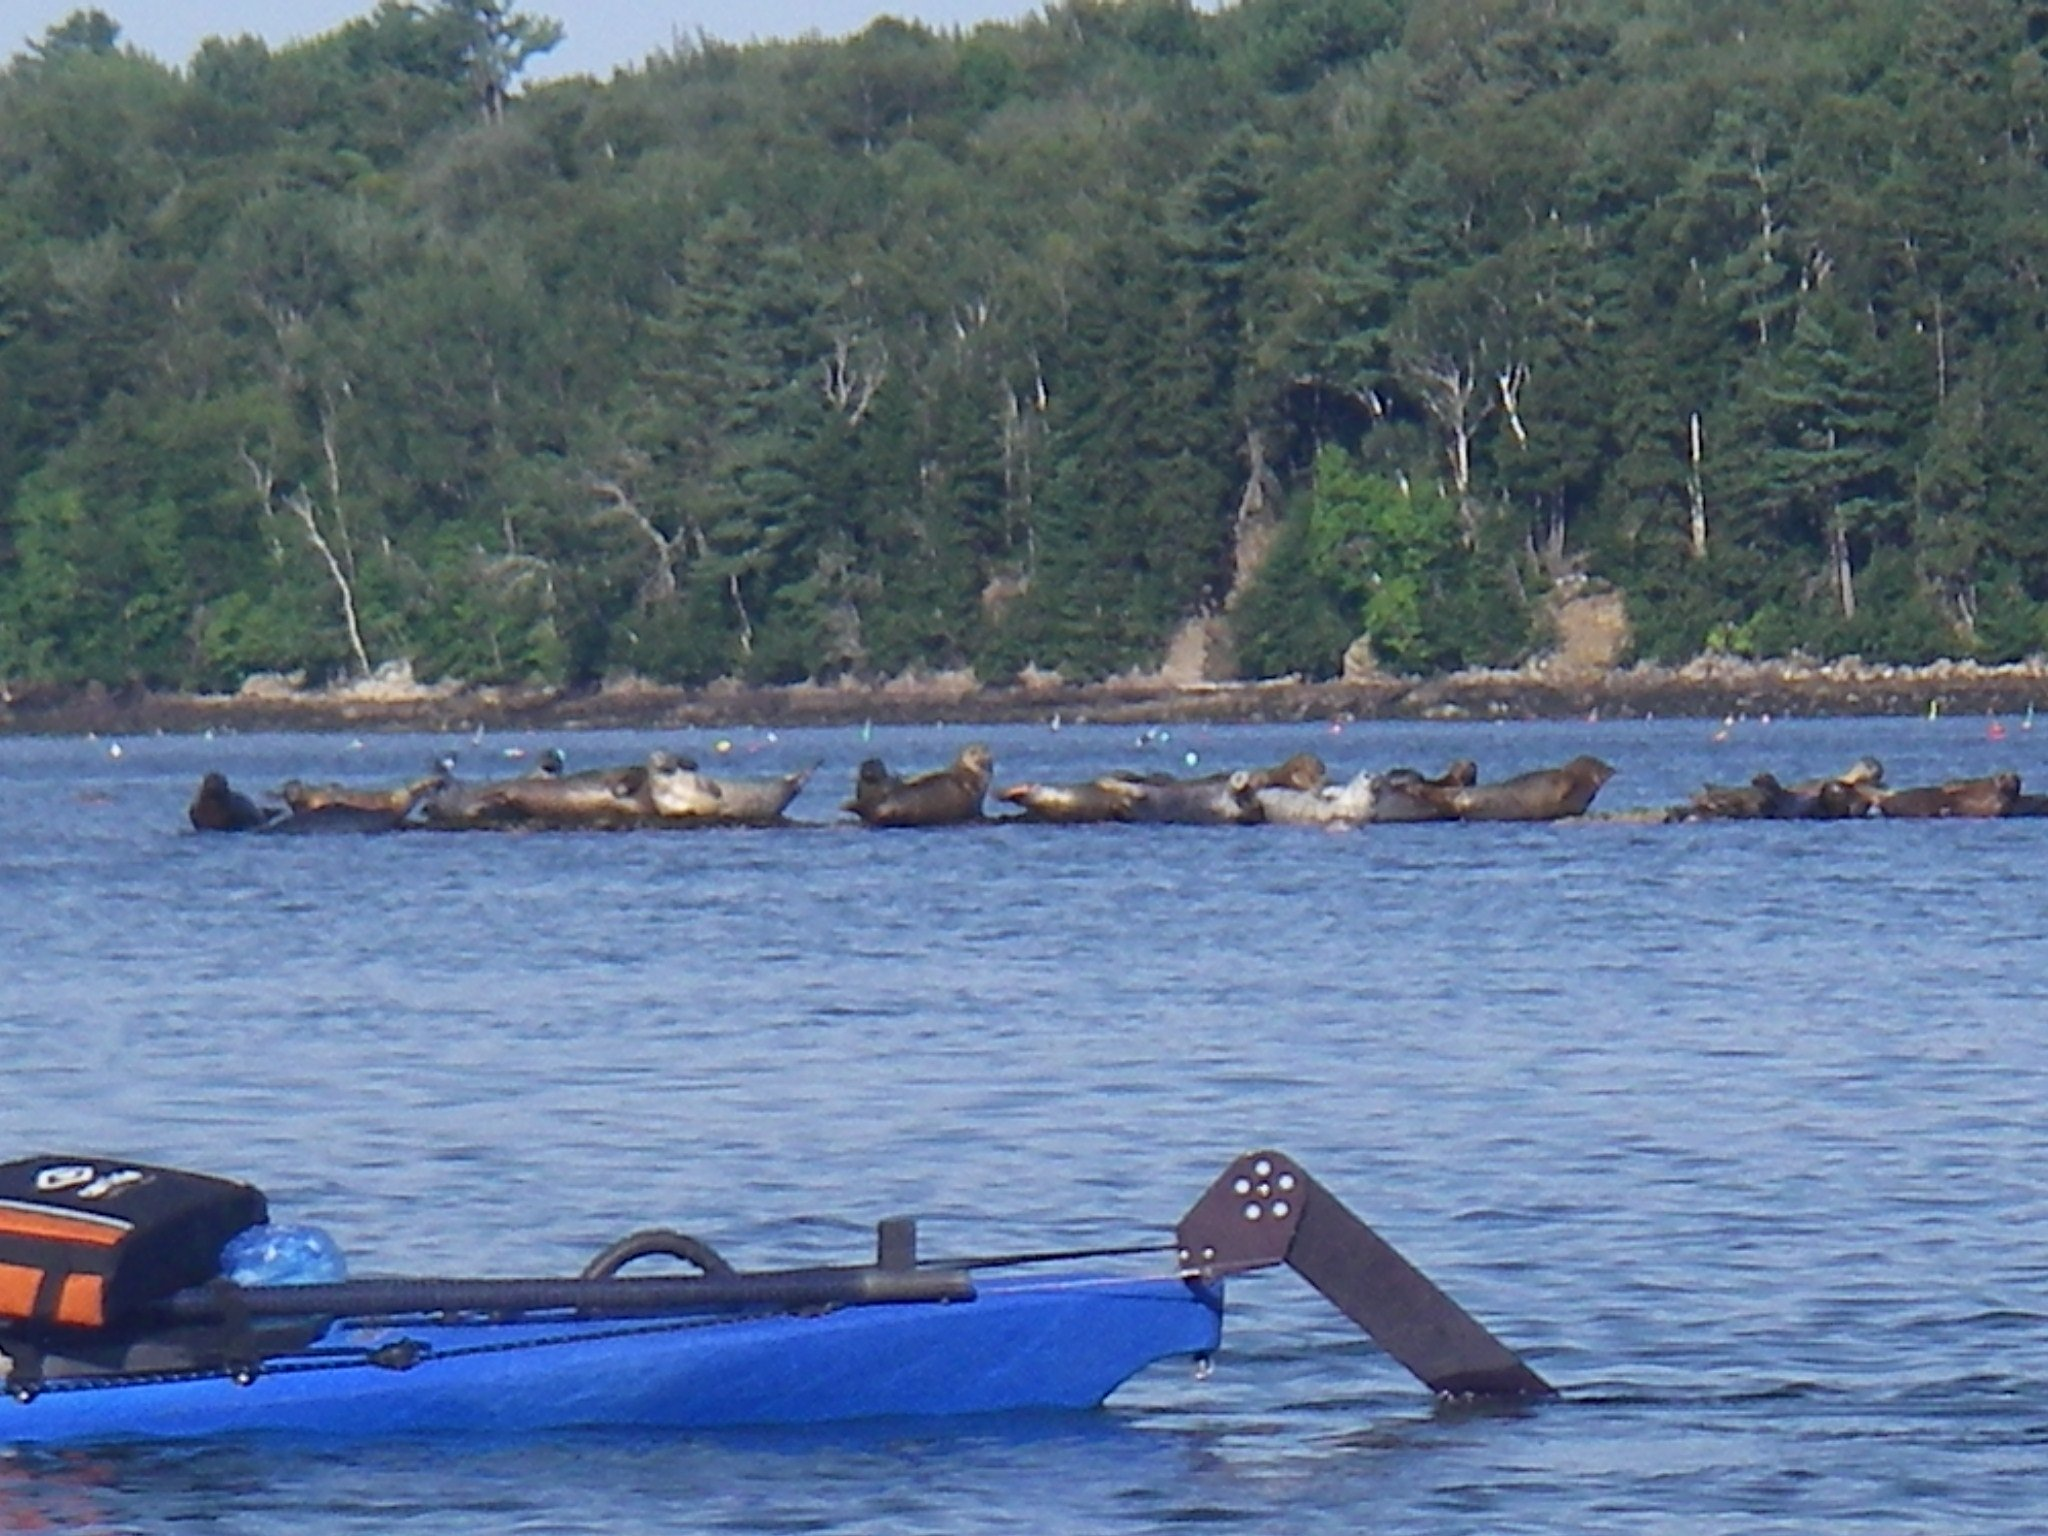 Seals basking on a ledge at low tide in Casco Bay.